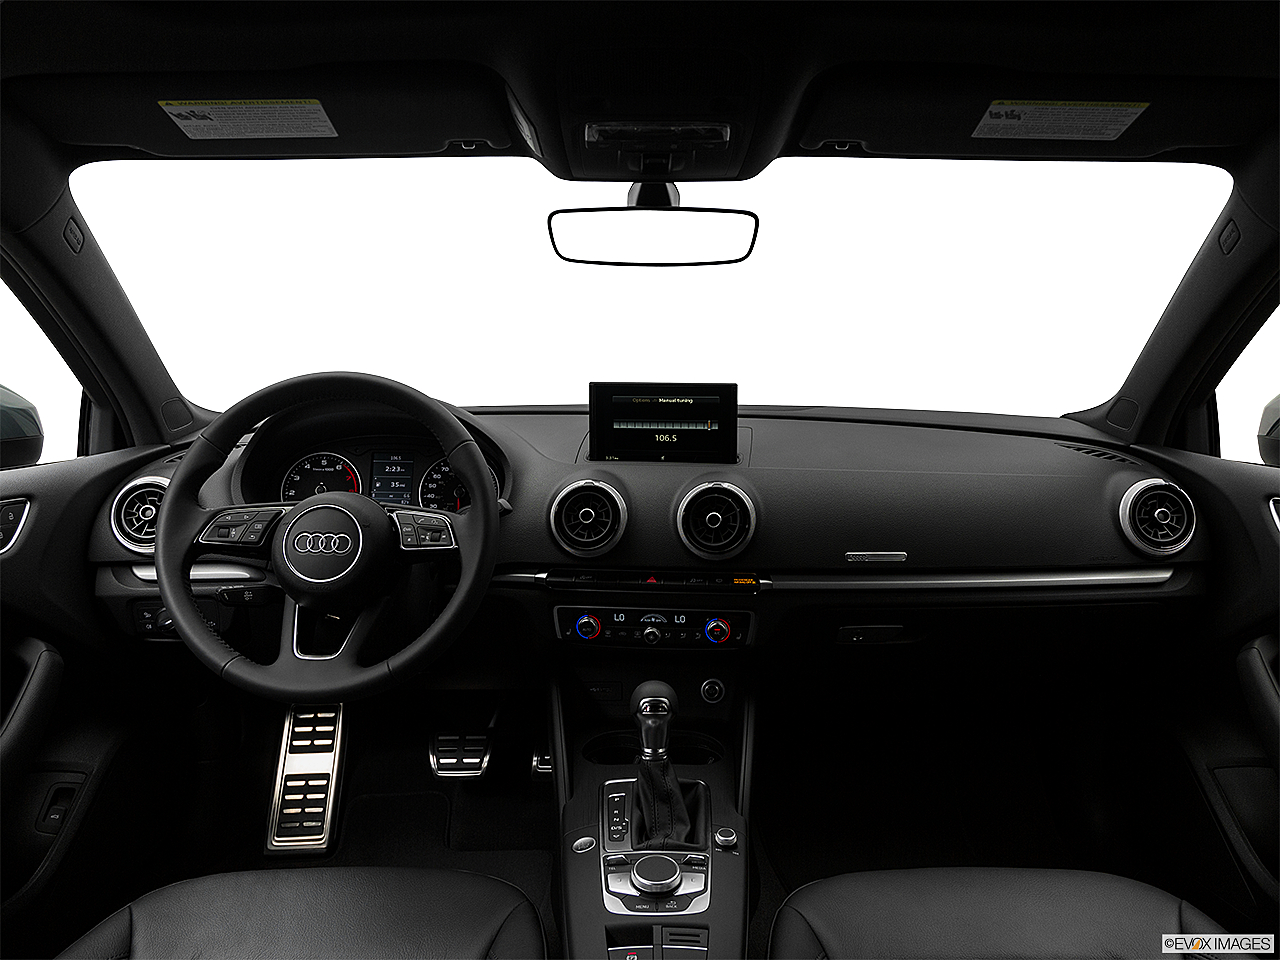 2019 Audi A3 Premium 2.0 TFSI, centered wide dash shot